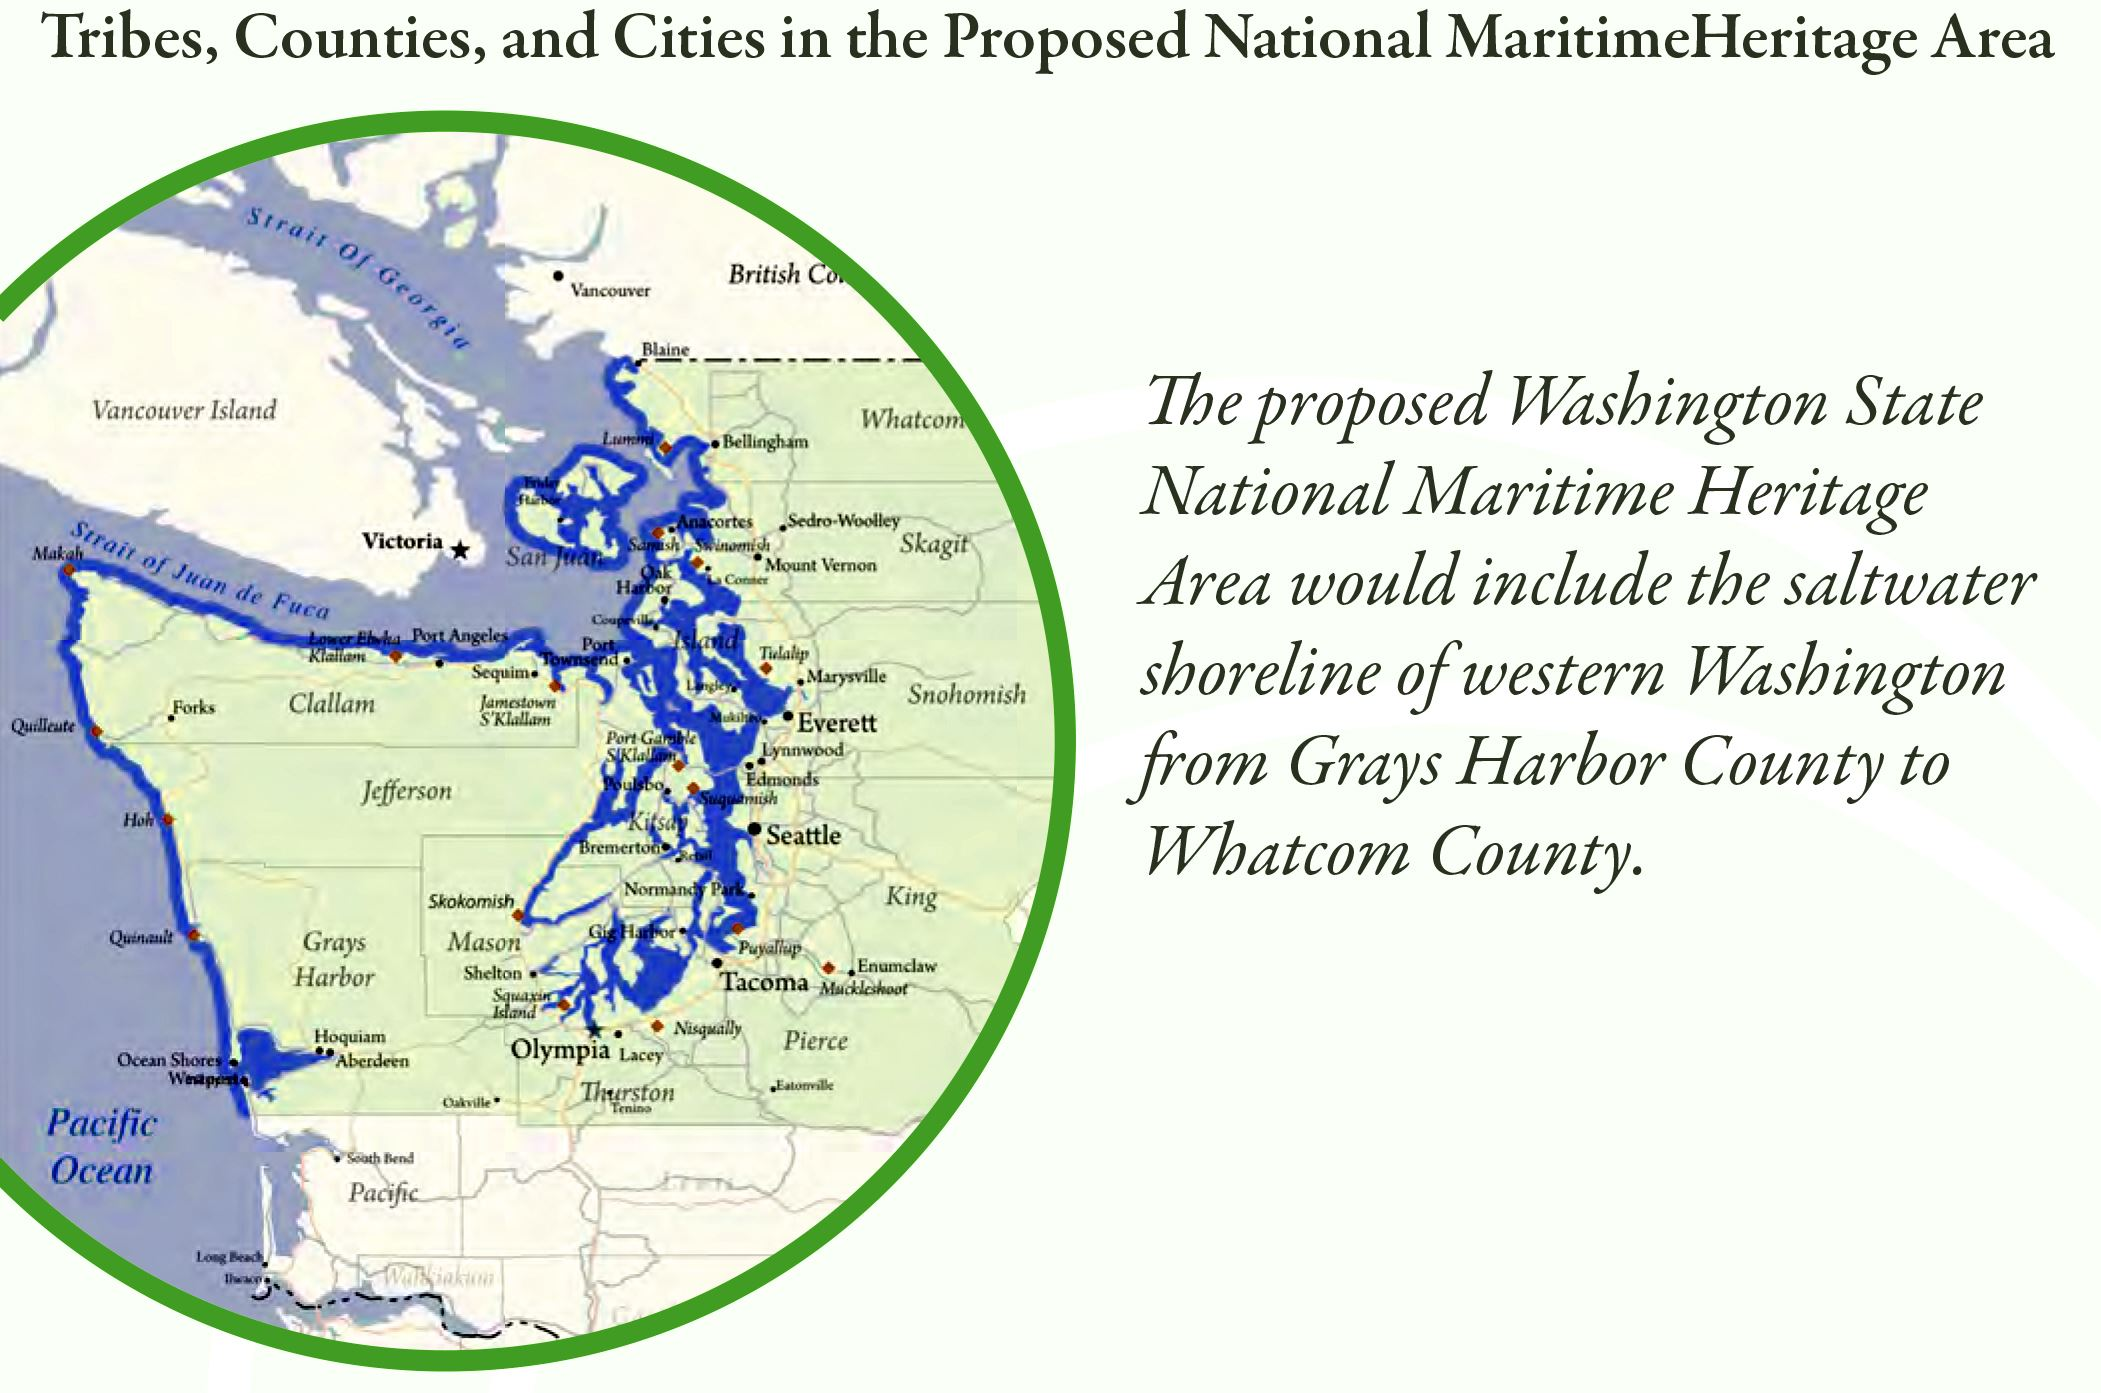 Proposed National Maritime Heritage Area Map